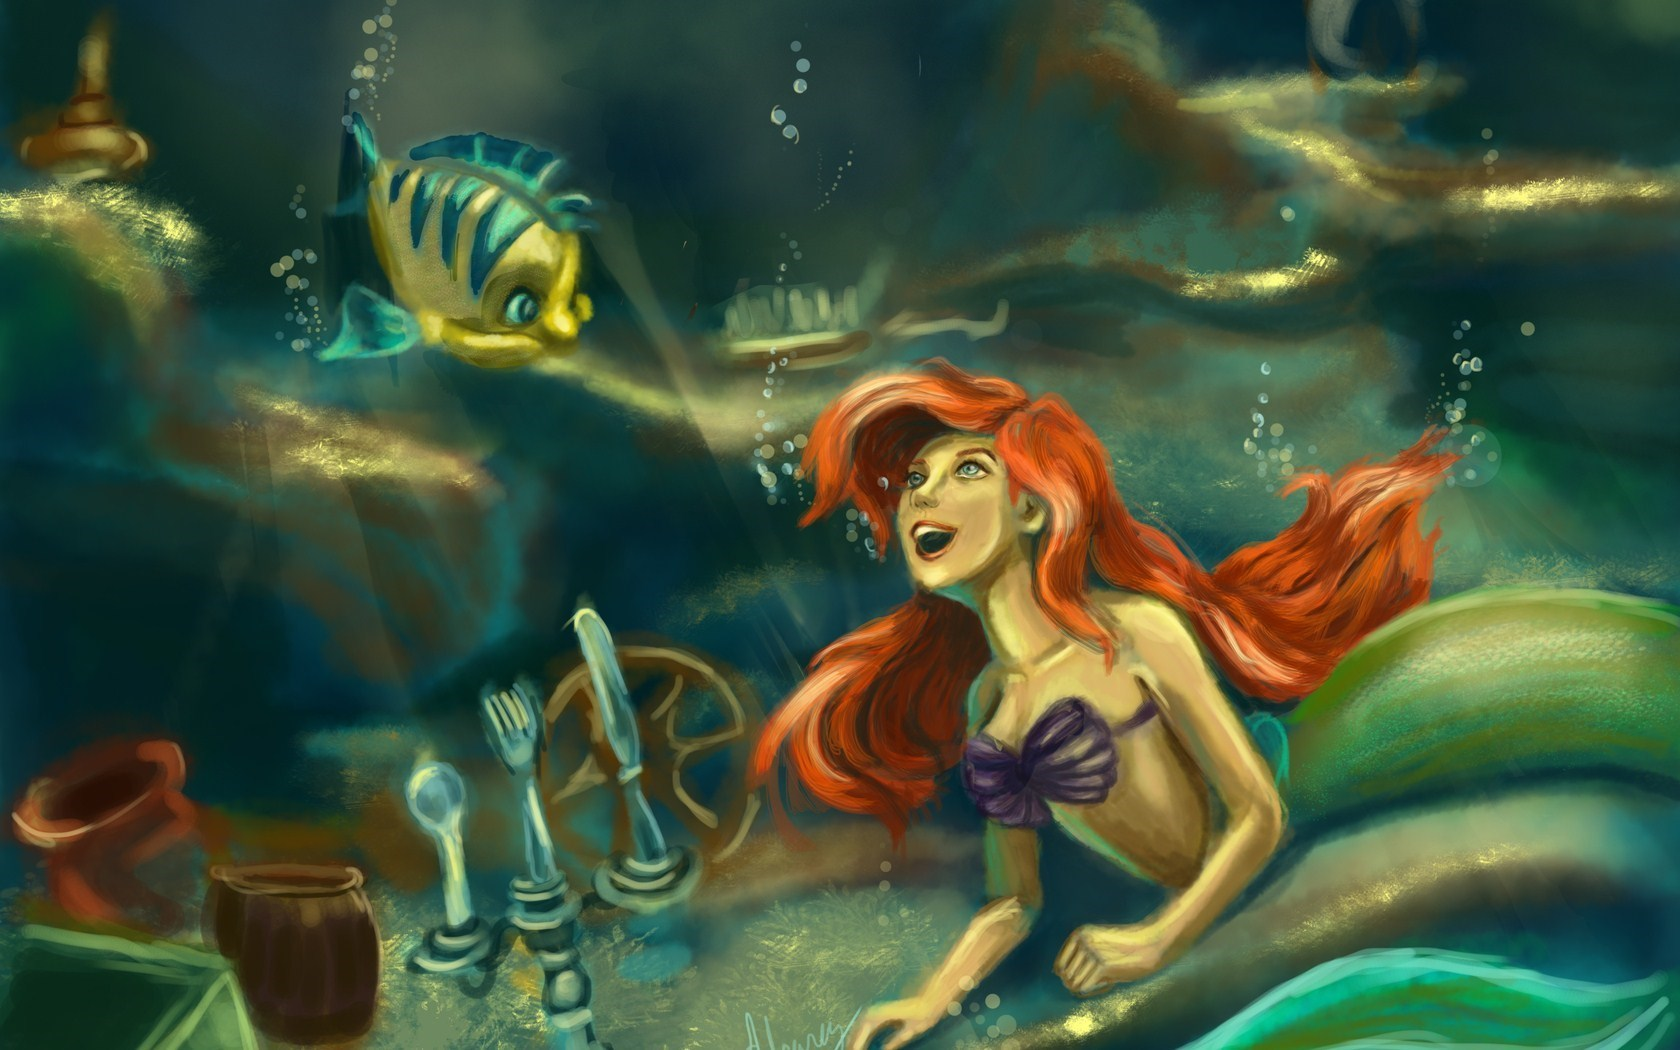 The Little Mermaid Ariel Artwork Cartoon